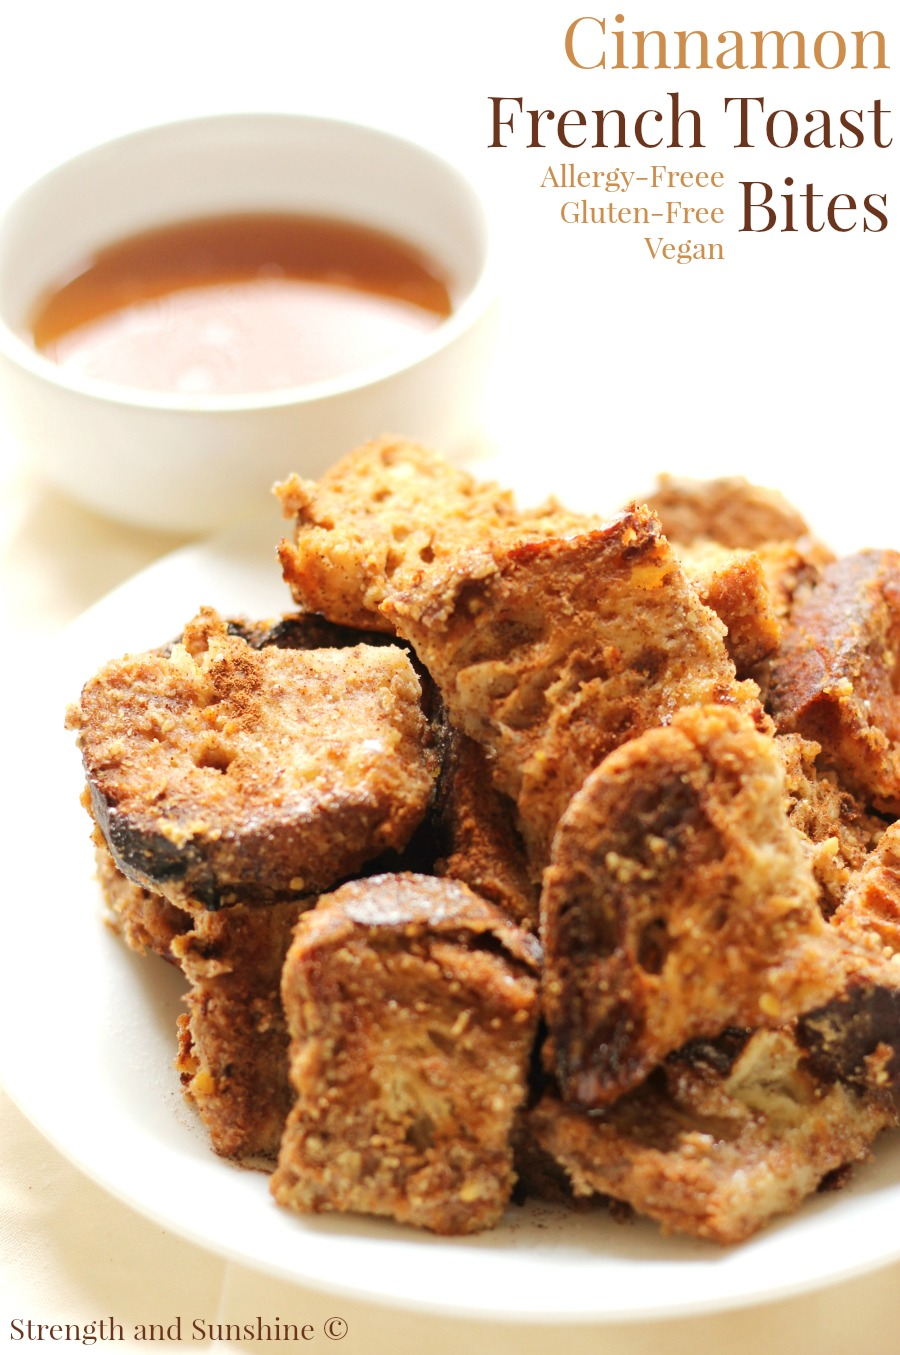 Gluten-Free Cinnamon French Toast Bites (Allergy-Free, Vegan) | Strength and Sunshine @RebeccaGF666 Breakfast just got even more fun! Gluten-Free Cinnamon French Toast Bites that are allergy-free, vegan, and perfect for little hands! An easy recipe perfect for a healthy weekend treat! Kid-loved and mom-approved!